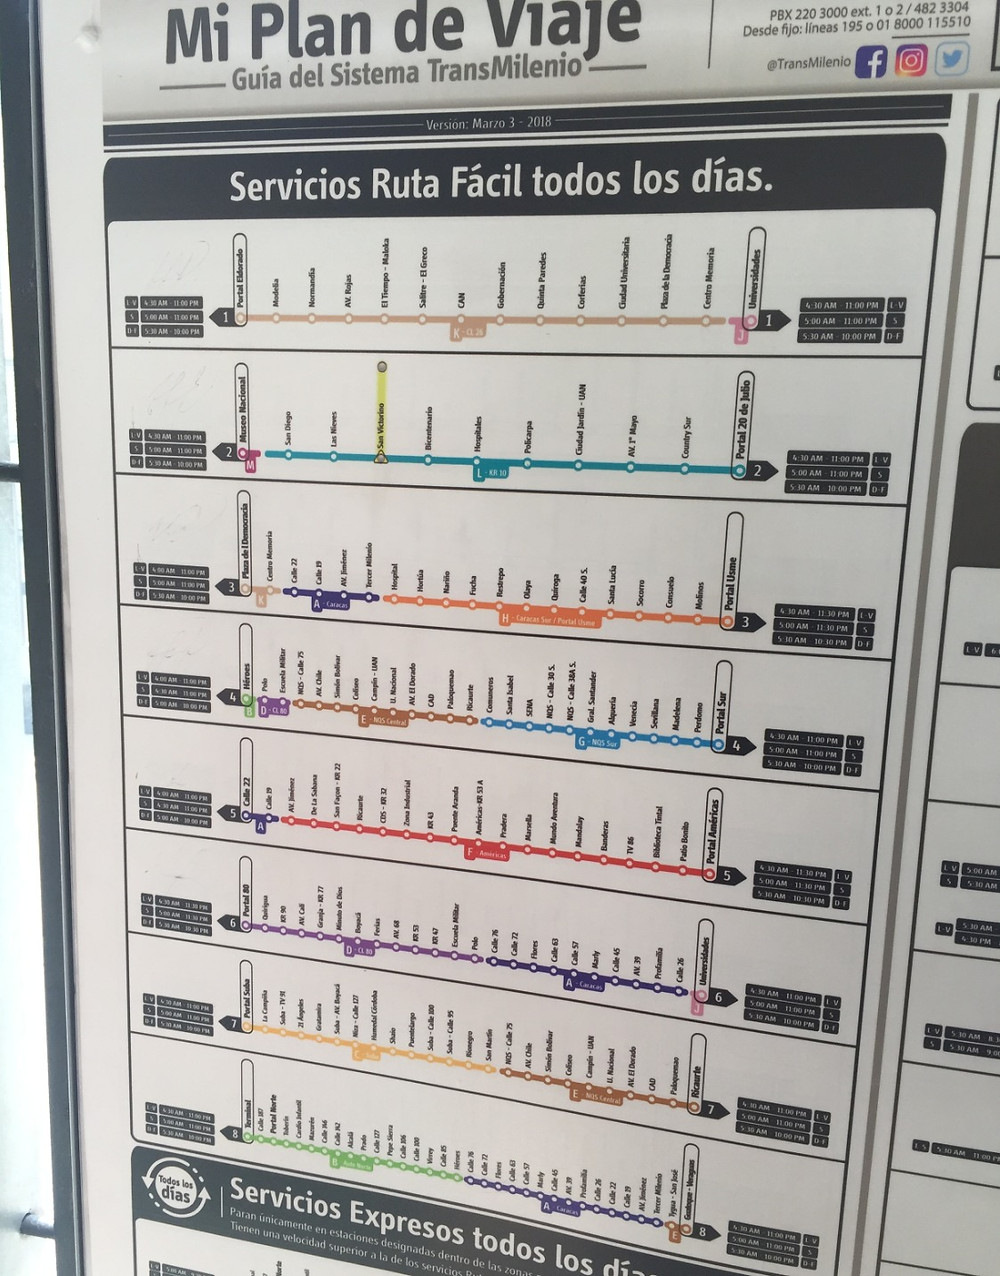 Bus system photo of Colombia bus lines